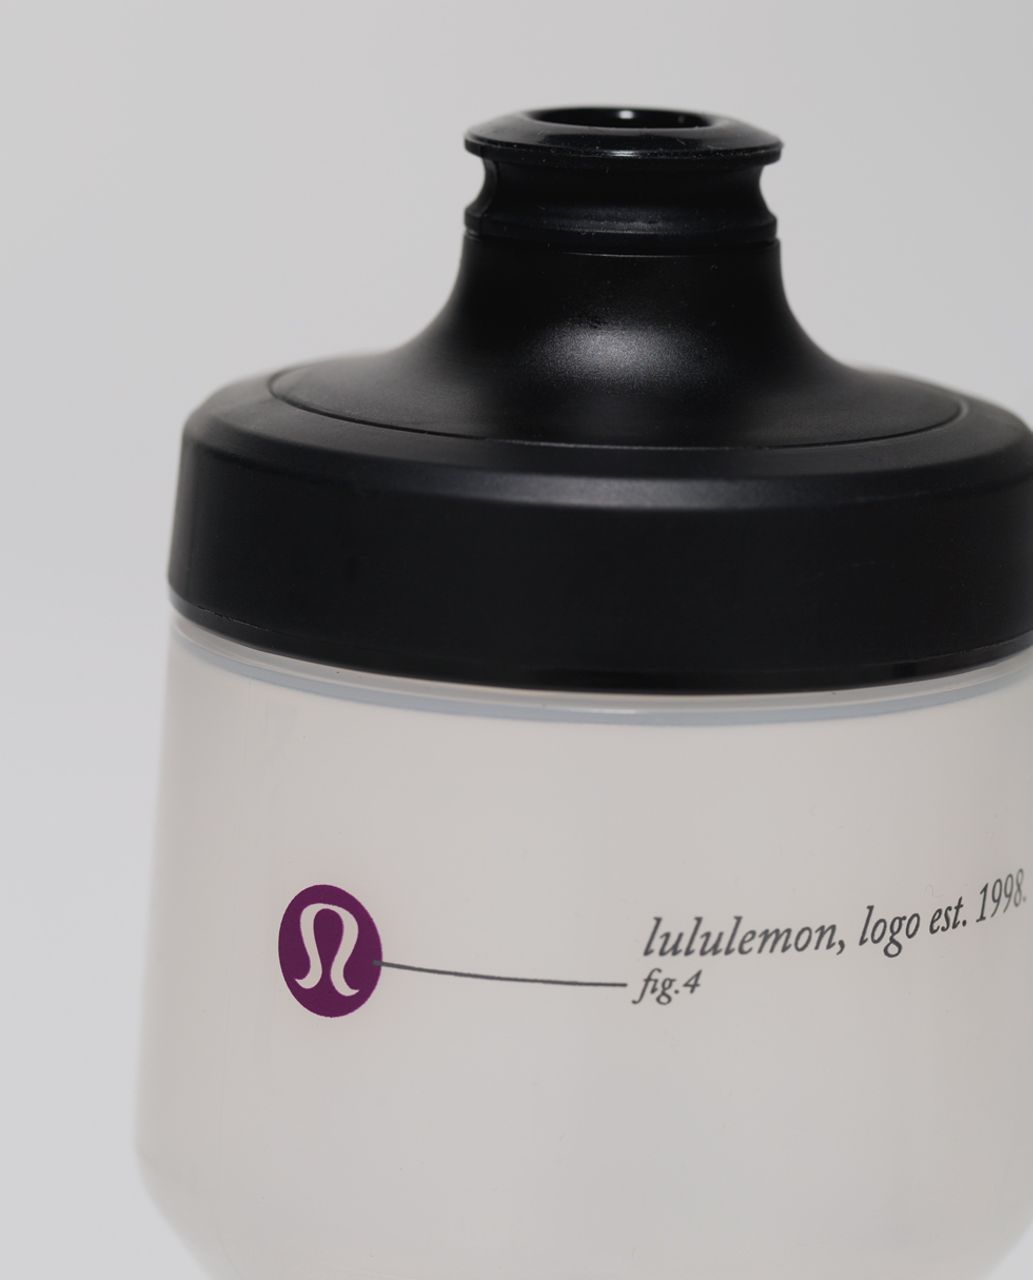 Lululemon Purist Cycling Water Bottle - Mountain Range Black